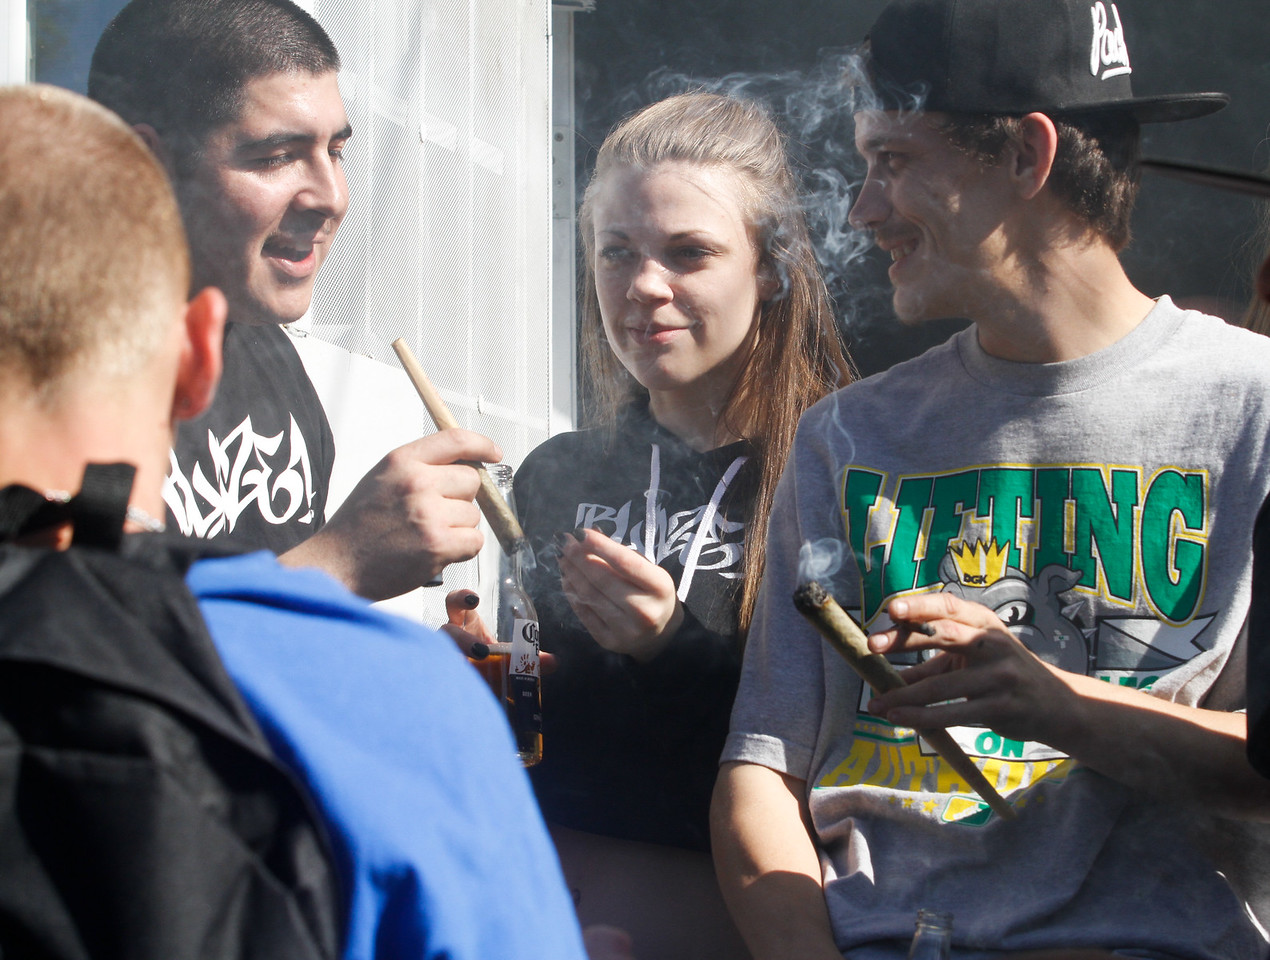 Huge joints are passed around during a 420 party Thursday April 20, 2017 at Blaze N' J's Smoke Shop in Chico, California. (Emily Bertolino -- Enterprise-Record)